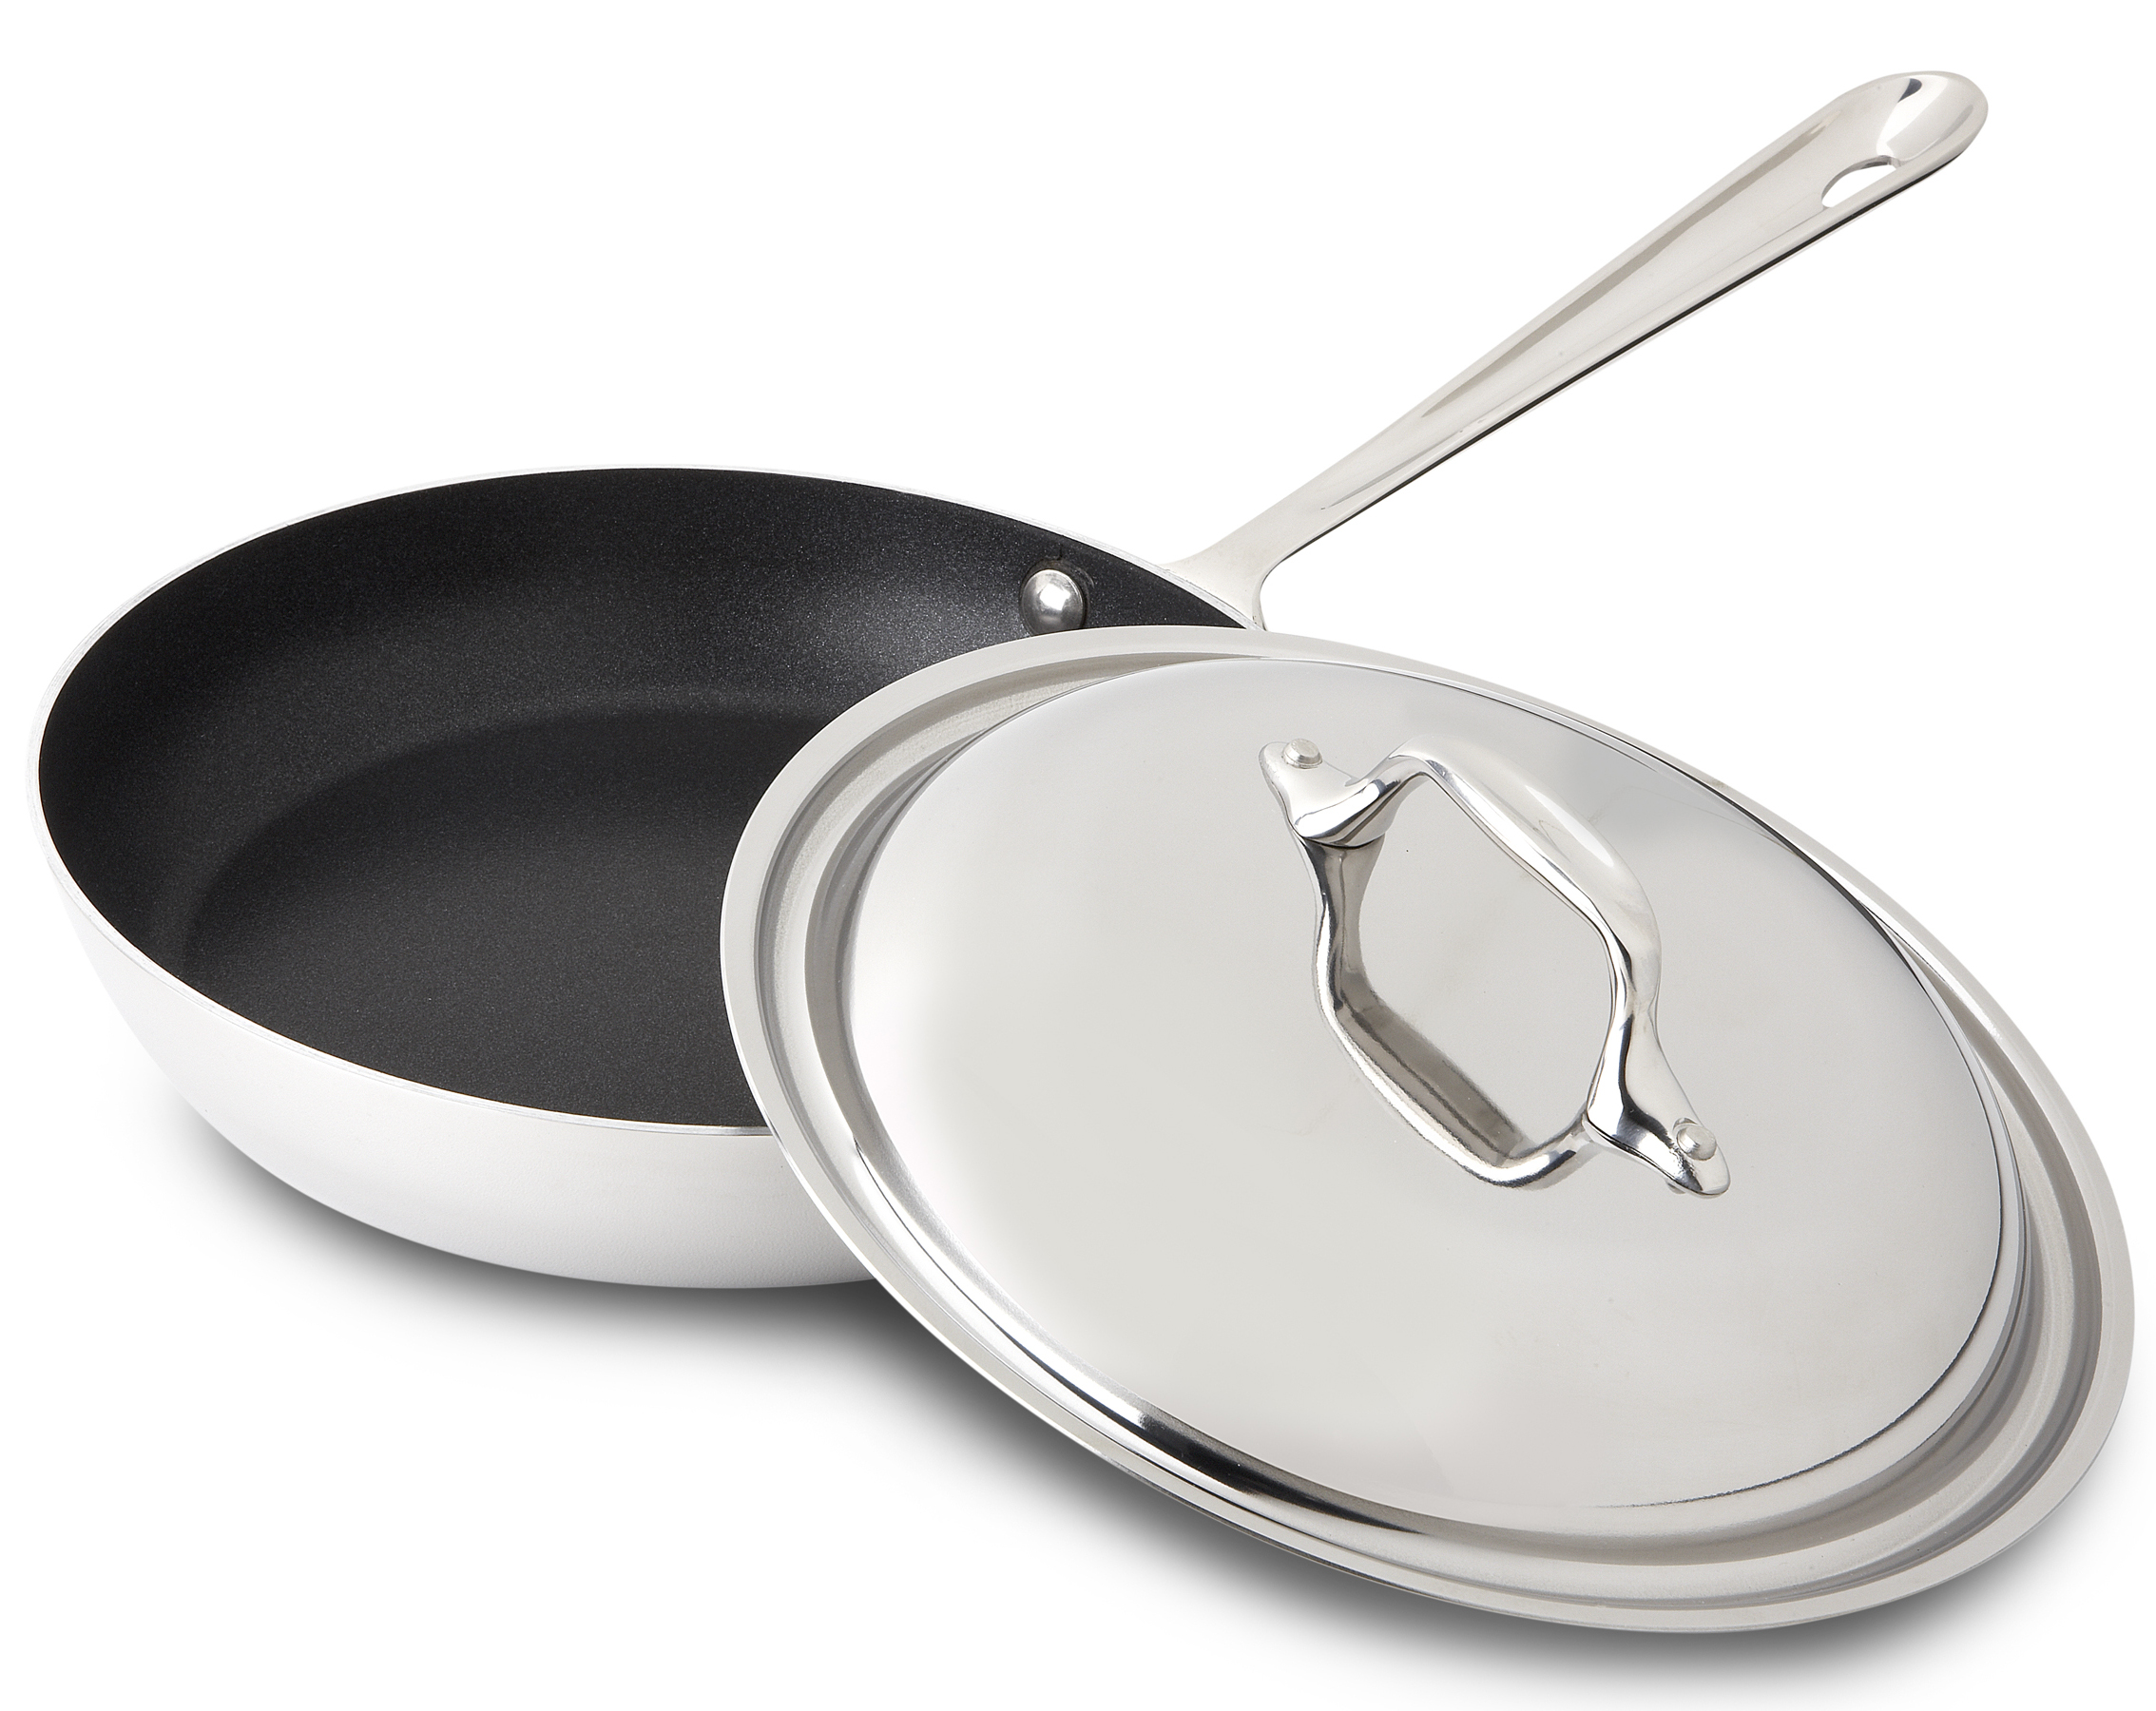 All-Clad 18/10 Stainless Steel Nonstick French Skillet with Domed Lid, 9 Inch